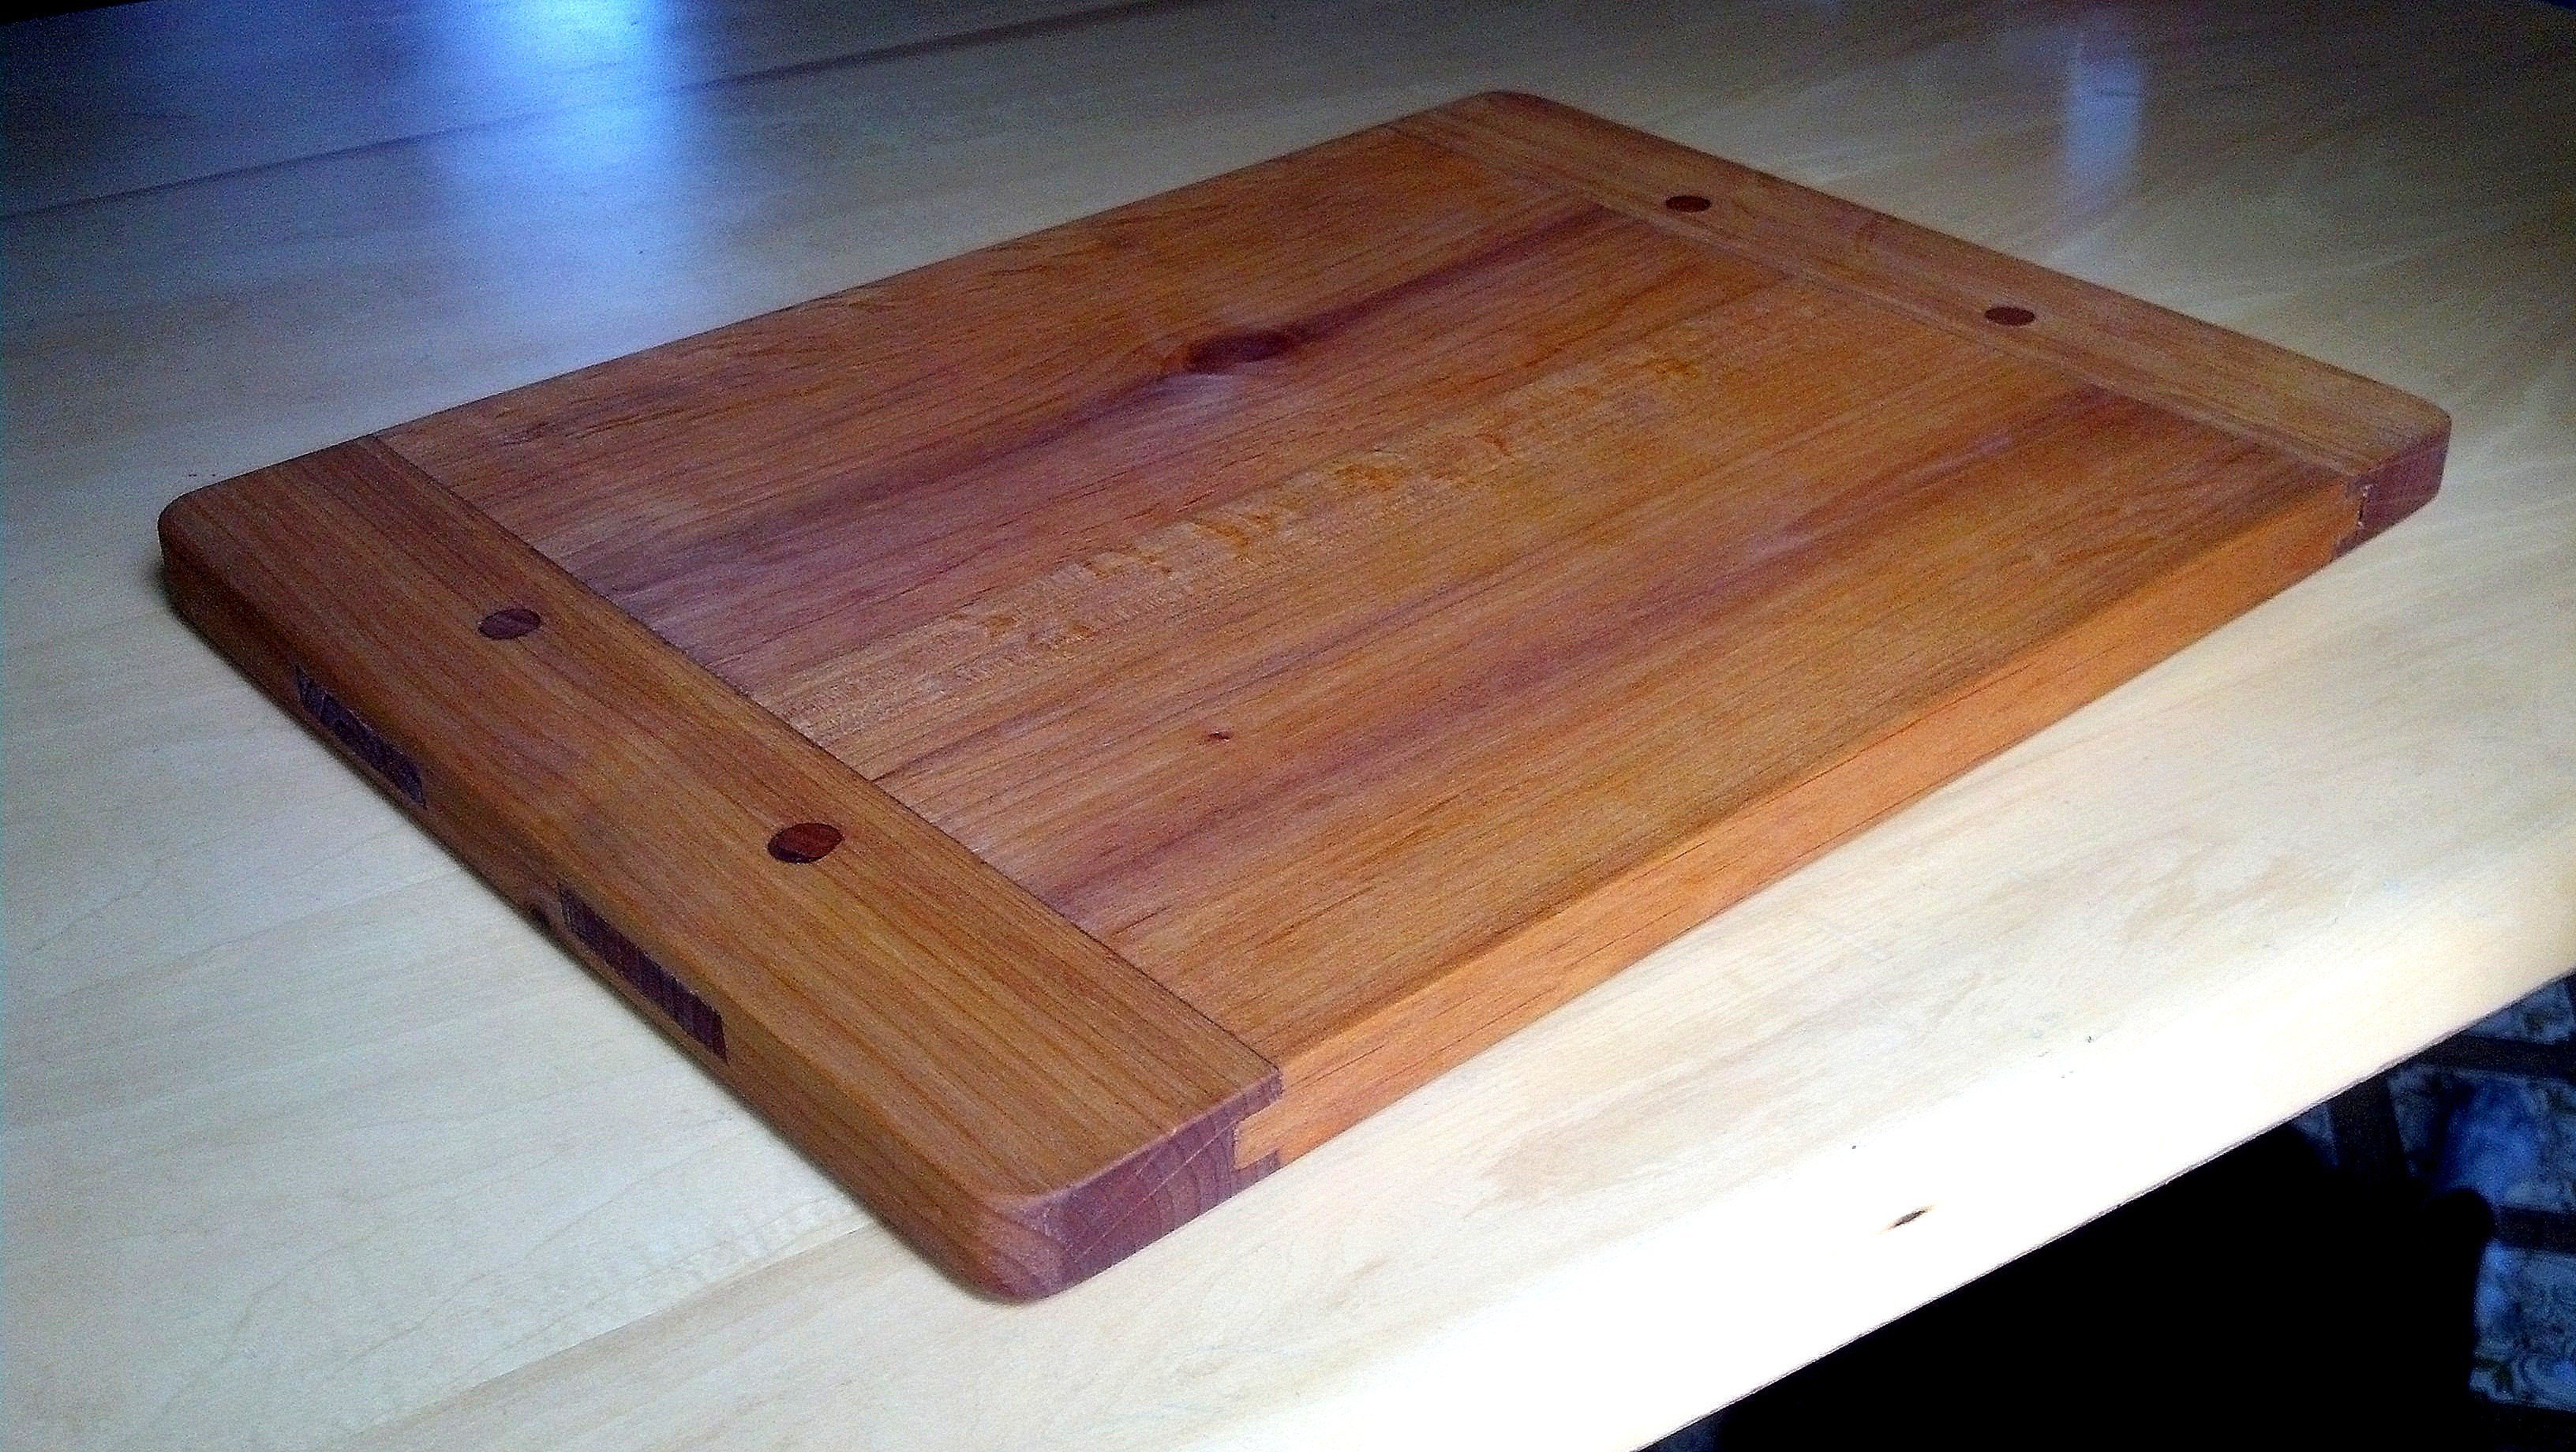 Breadboard-end Cutting Board by Andy Cleland